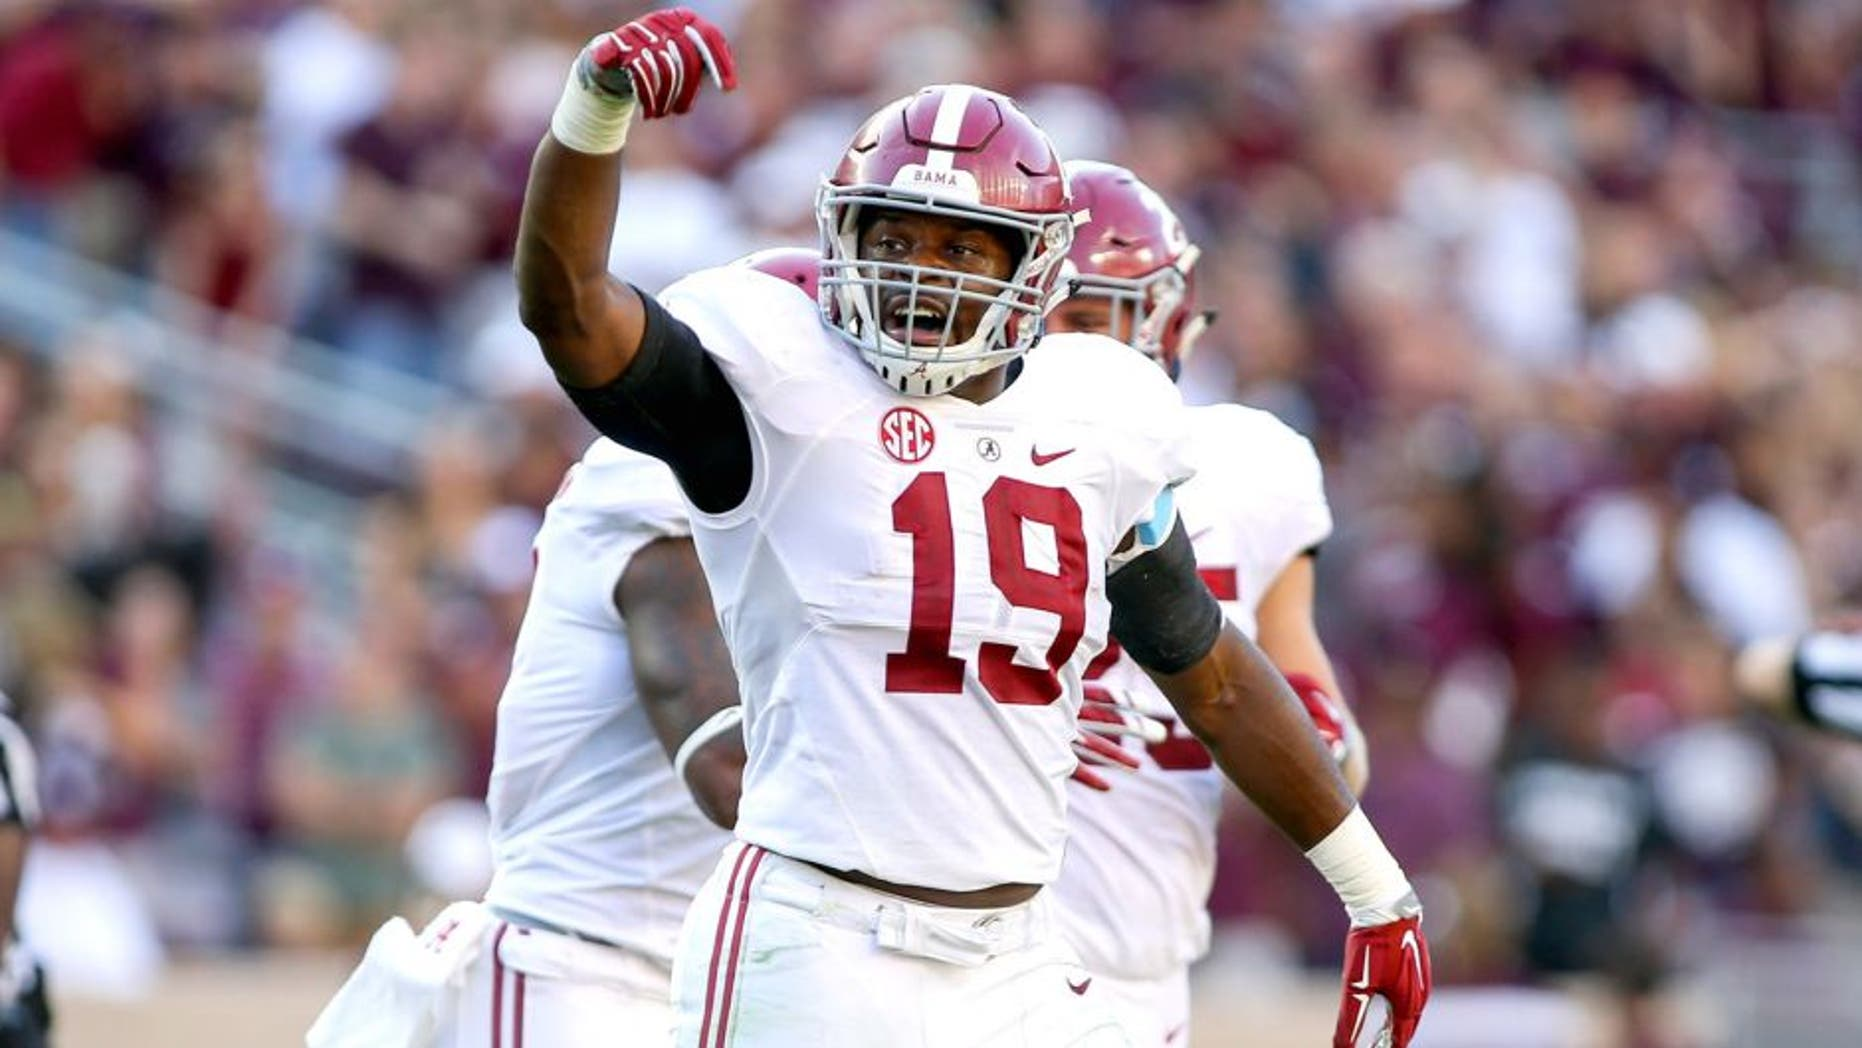 Oct 17, 2015; College Station, TX, USA; Alabama Crimson Tide linebacker Reggie Ragland (19) reacts after a play during the third quarter against the Texas A&M Aggies at Kyle Field. The Crimson Tide defeated the Aggies 41-23. Mandatory Credit: Troy Taormina-USA TODAY Sports